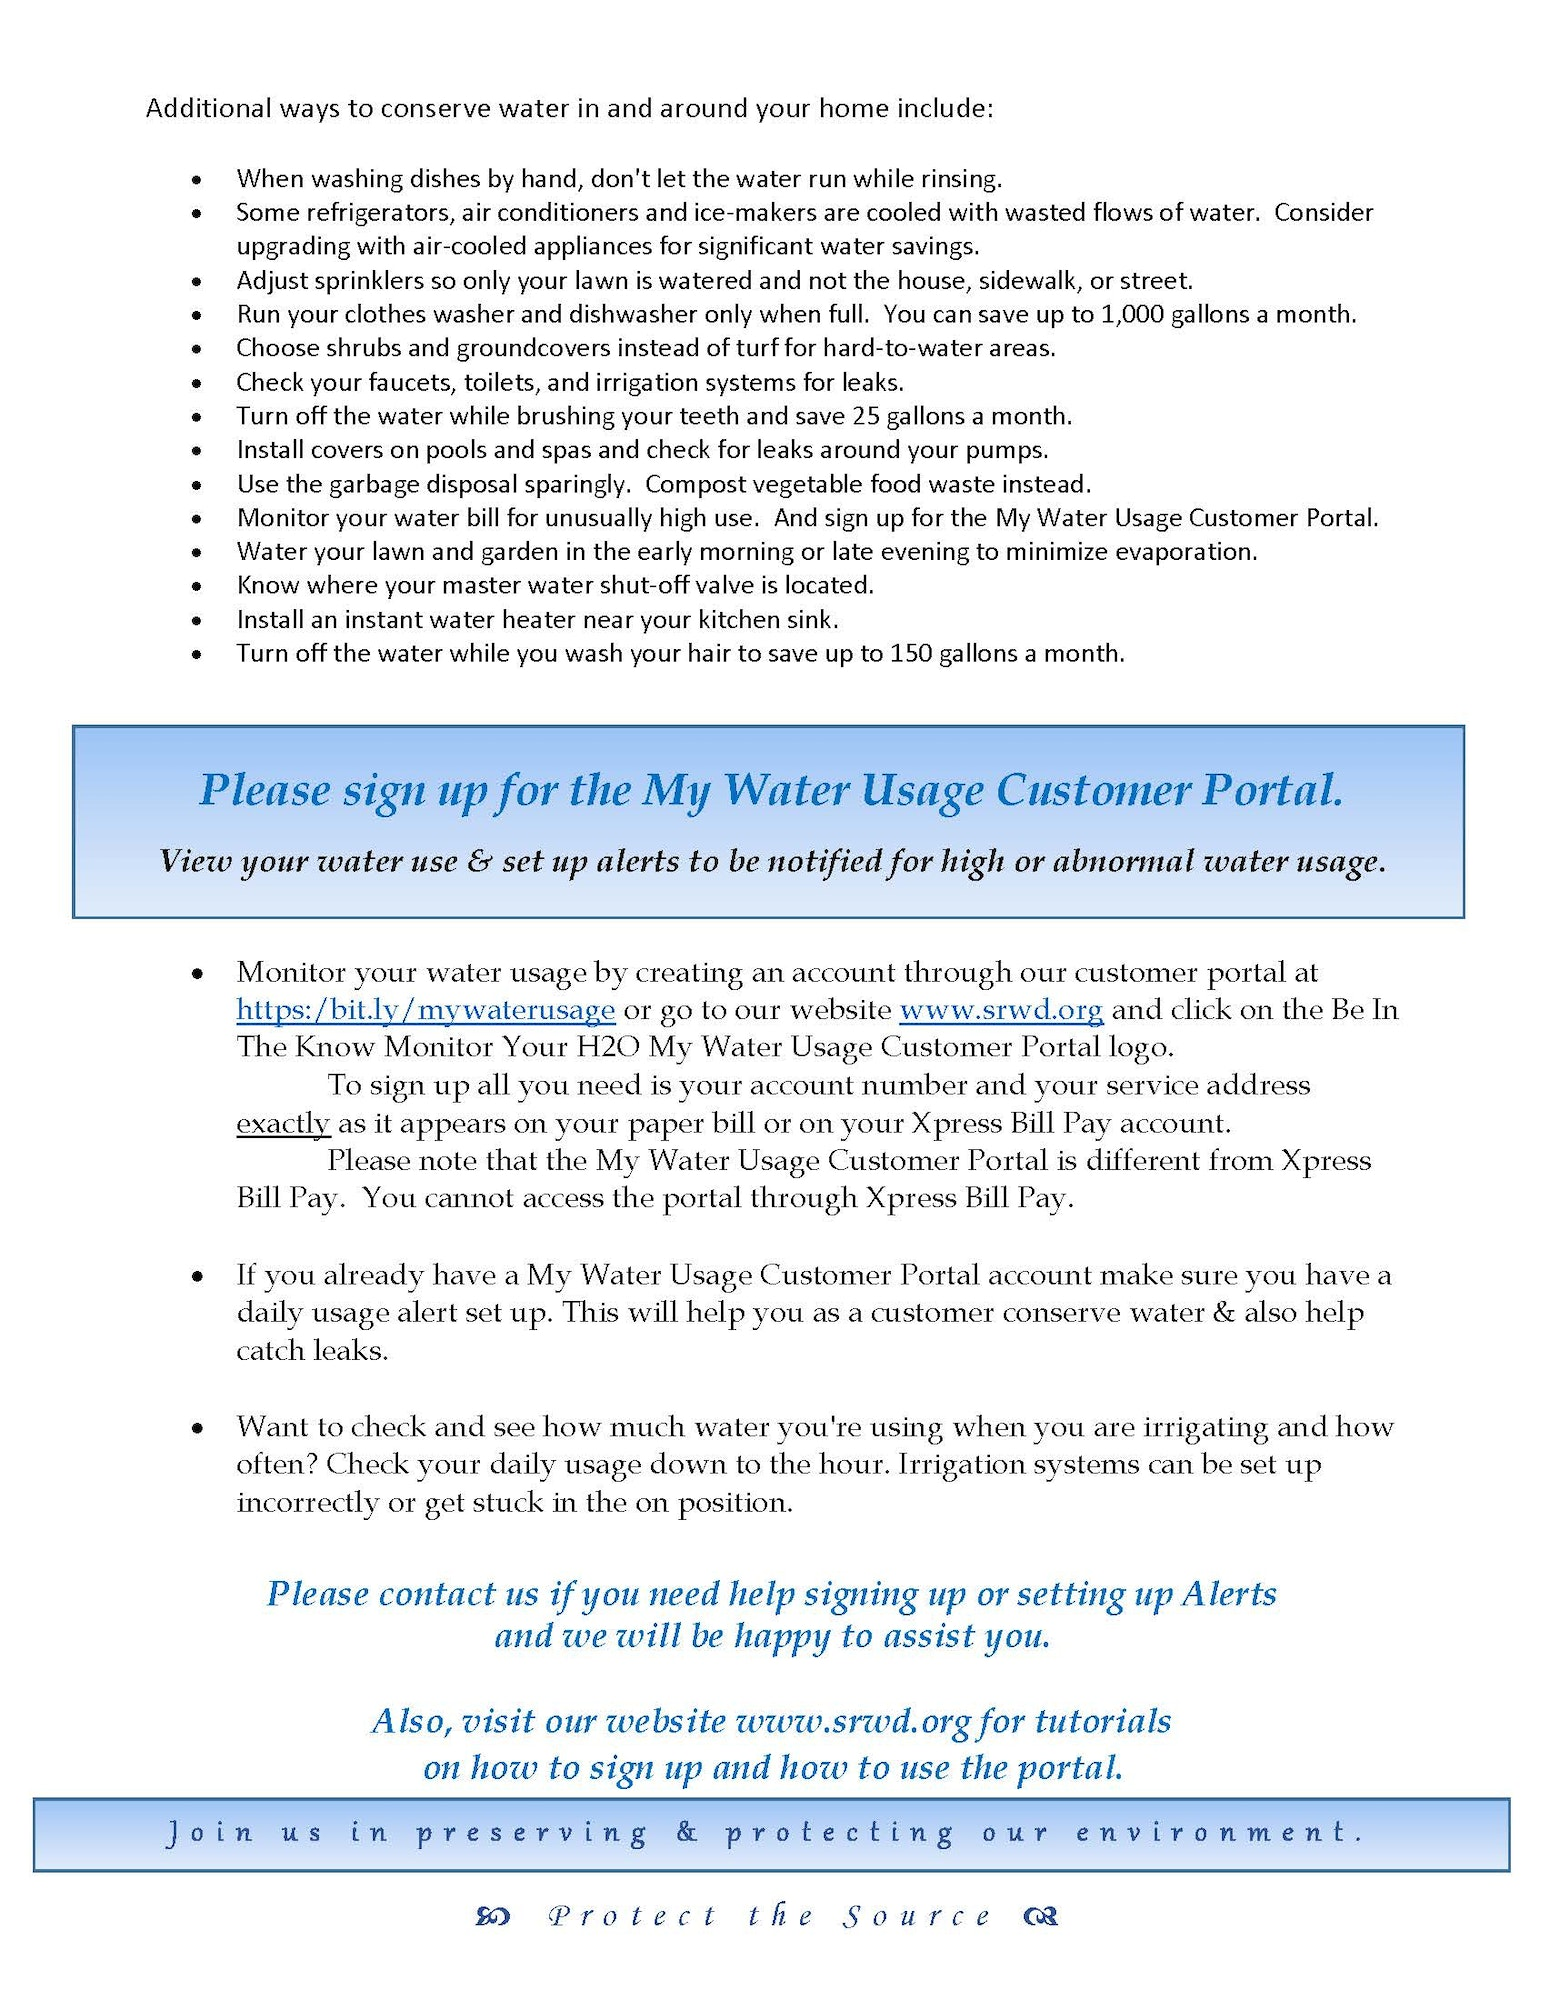 Image of Stage No. 2 Water Curtailment Advisory letter page two